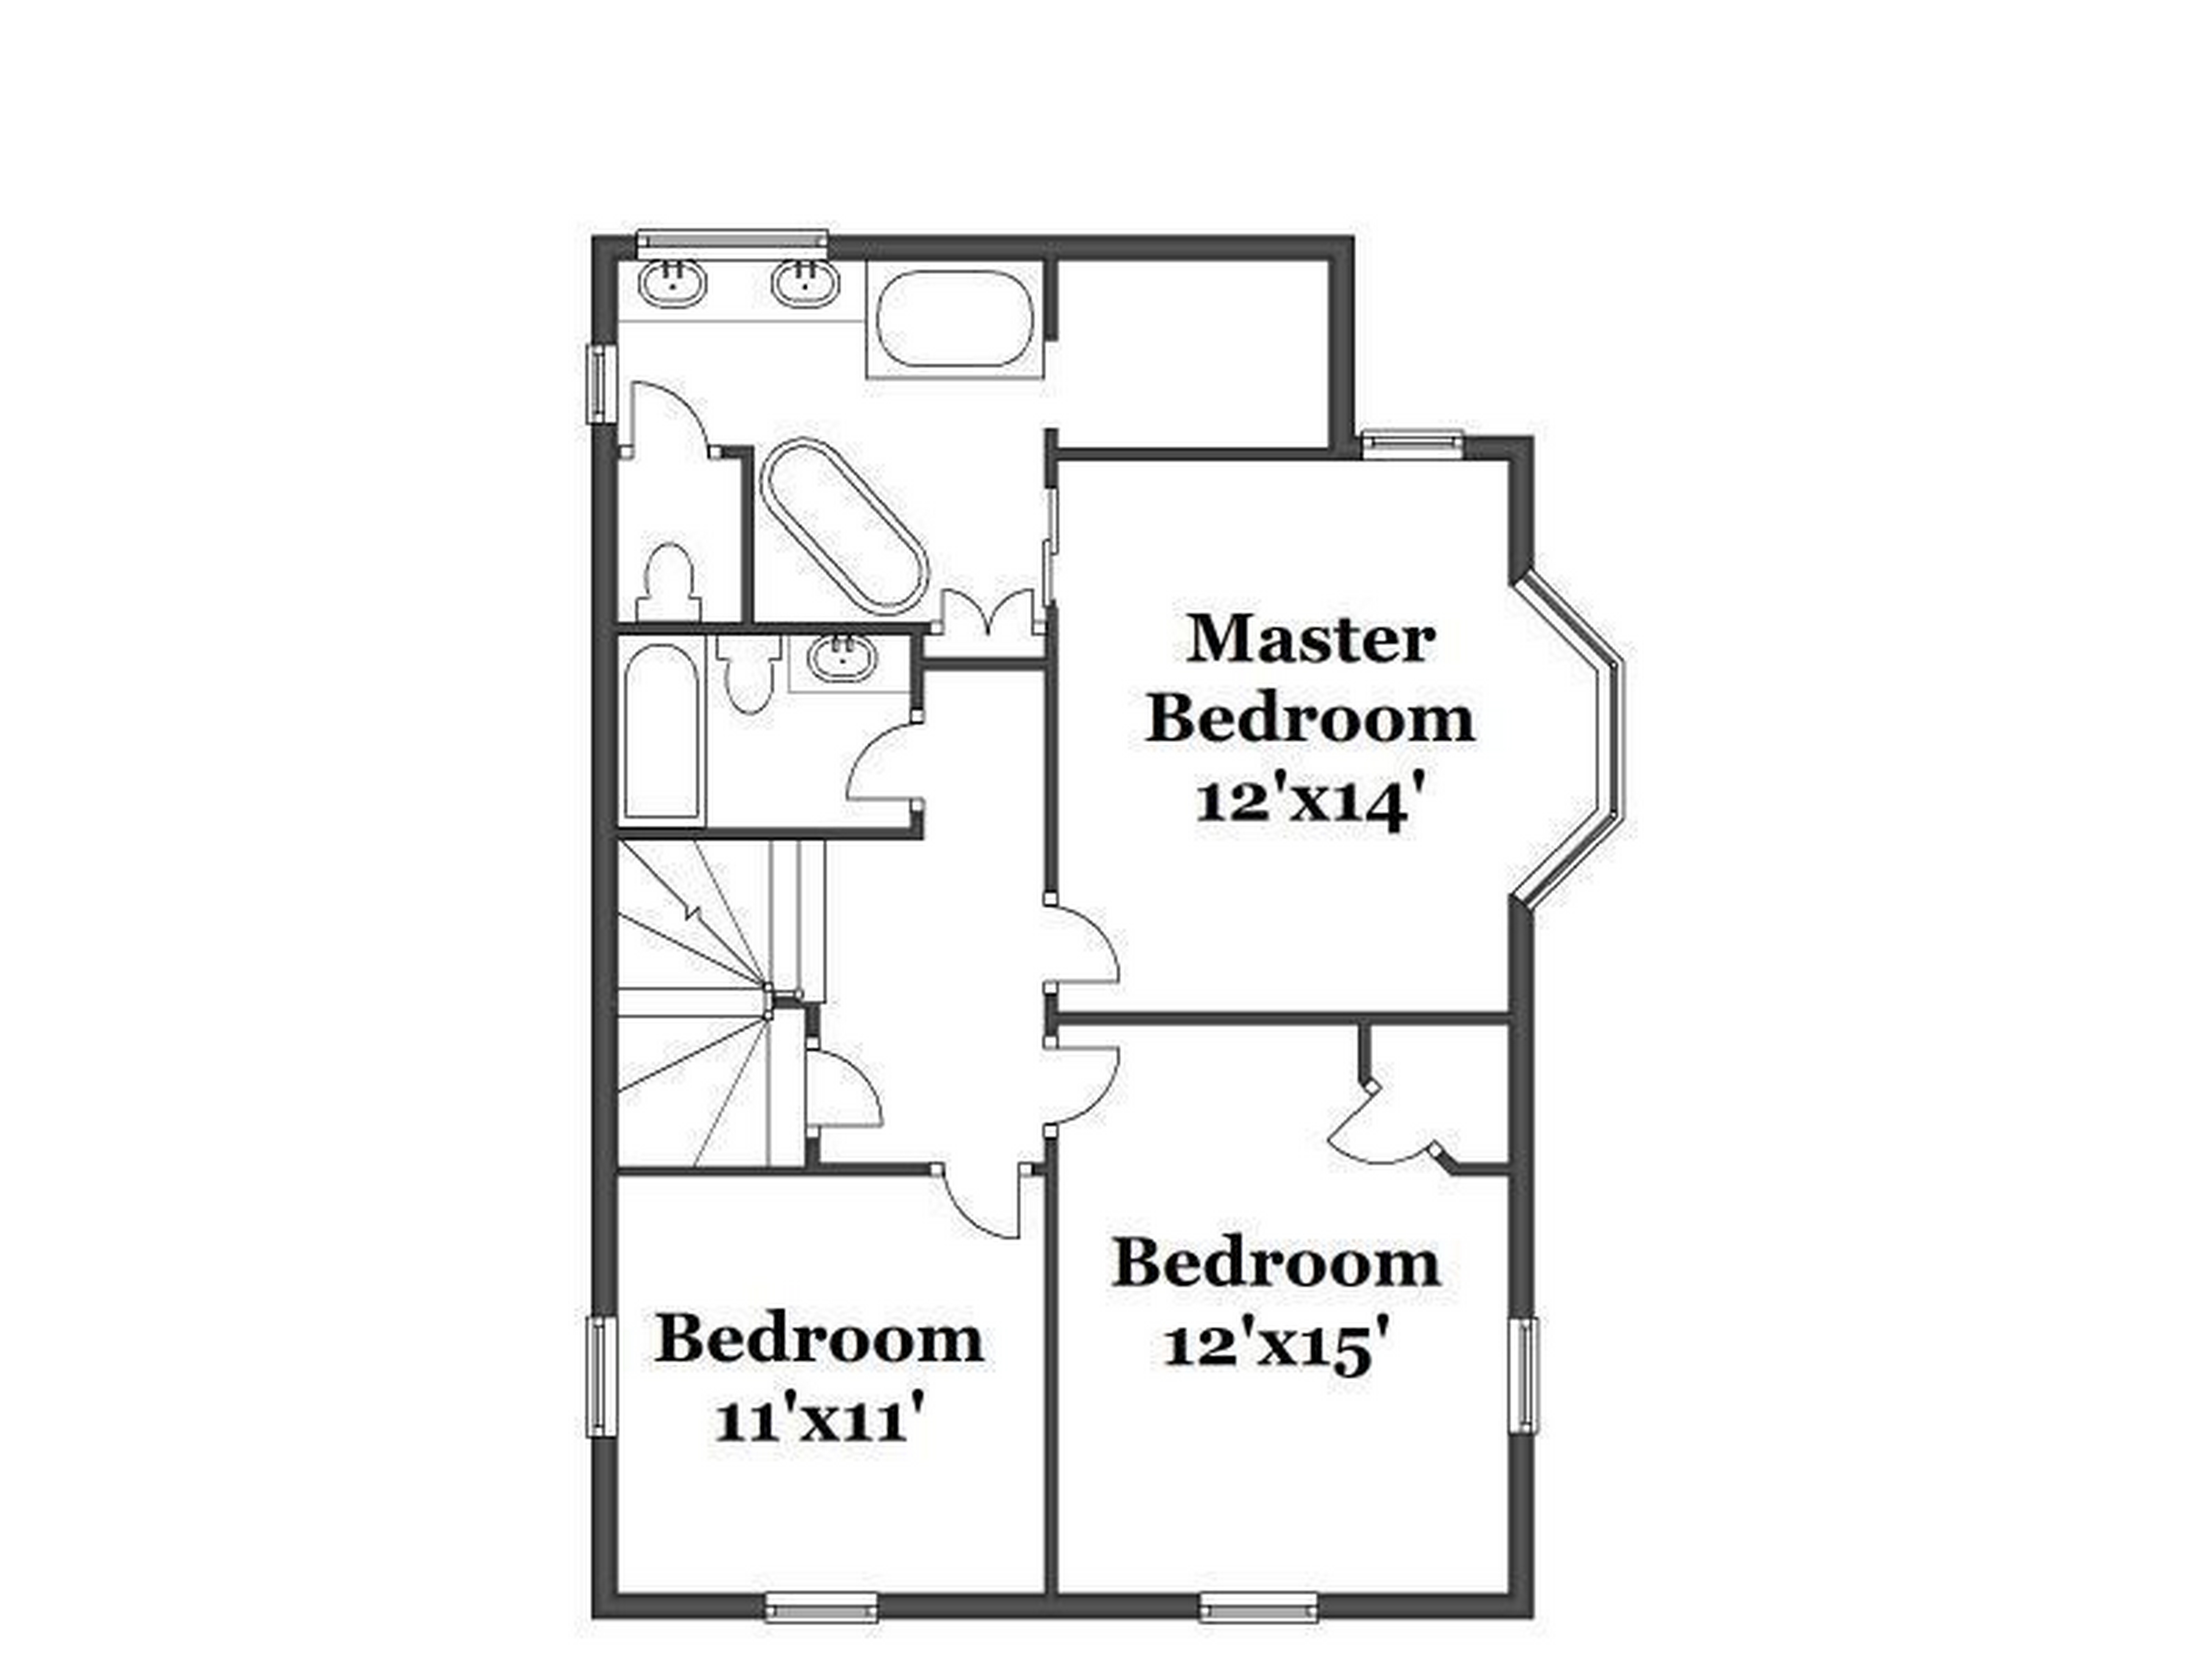 17 Lincoln Avenue Greenwich Ct 06830 Sothebys International X11 Wiring Diagram Floor Plan Image 2